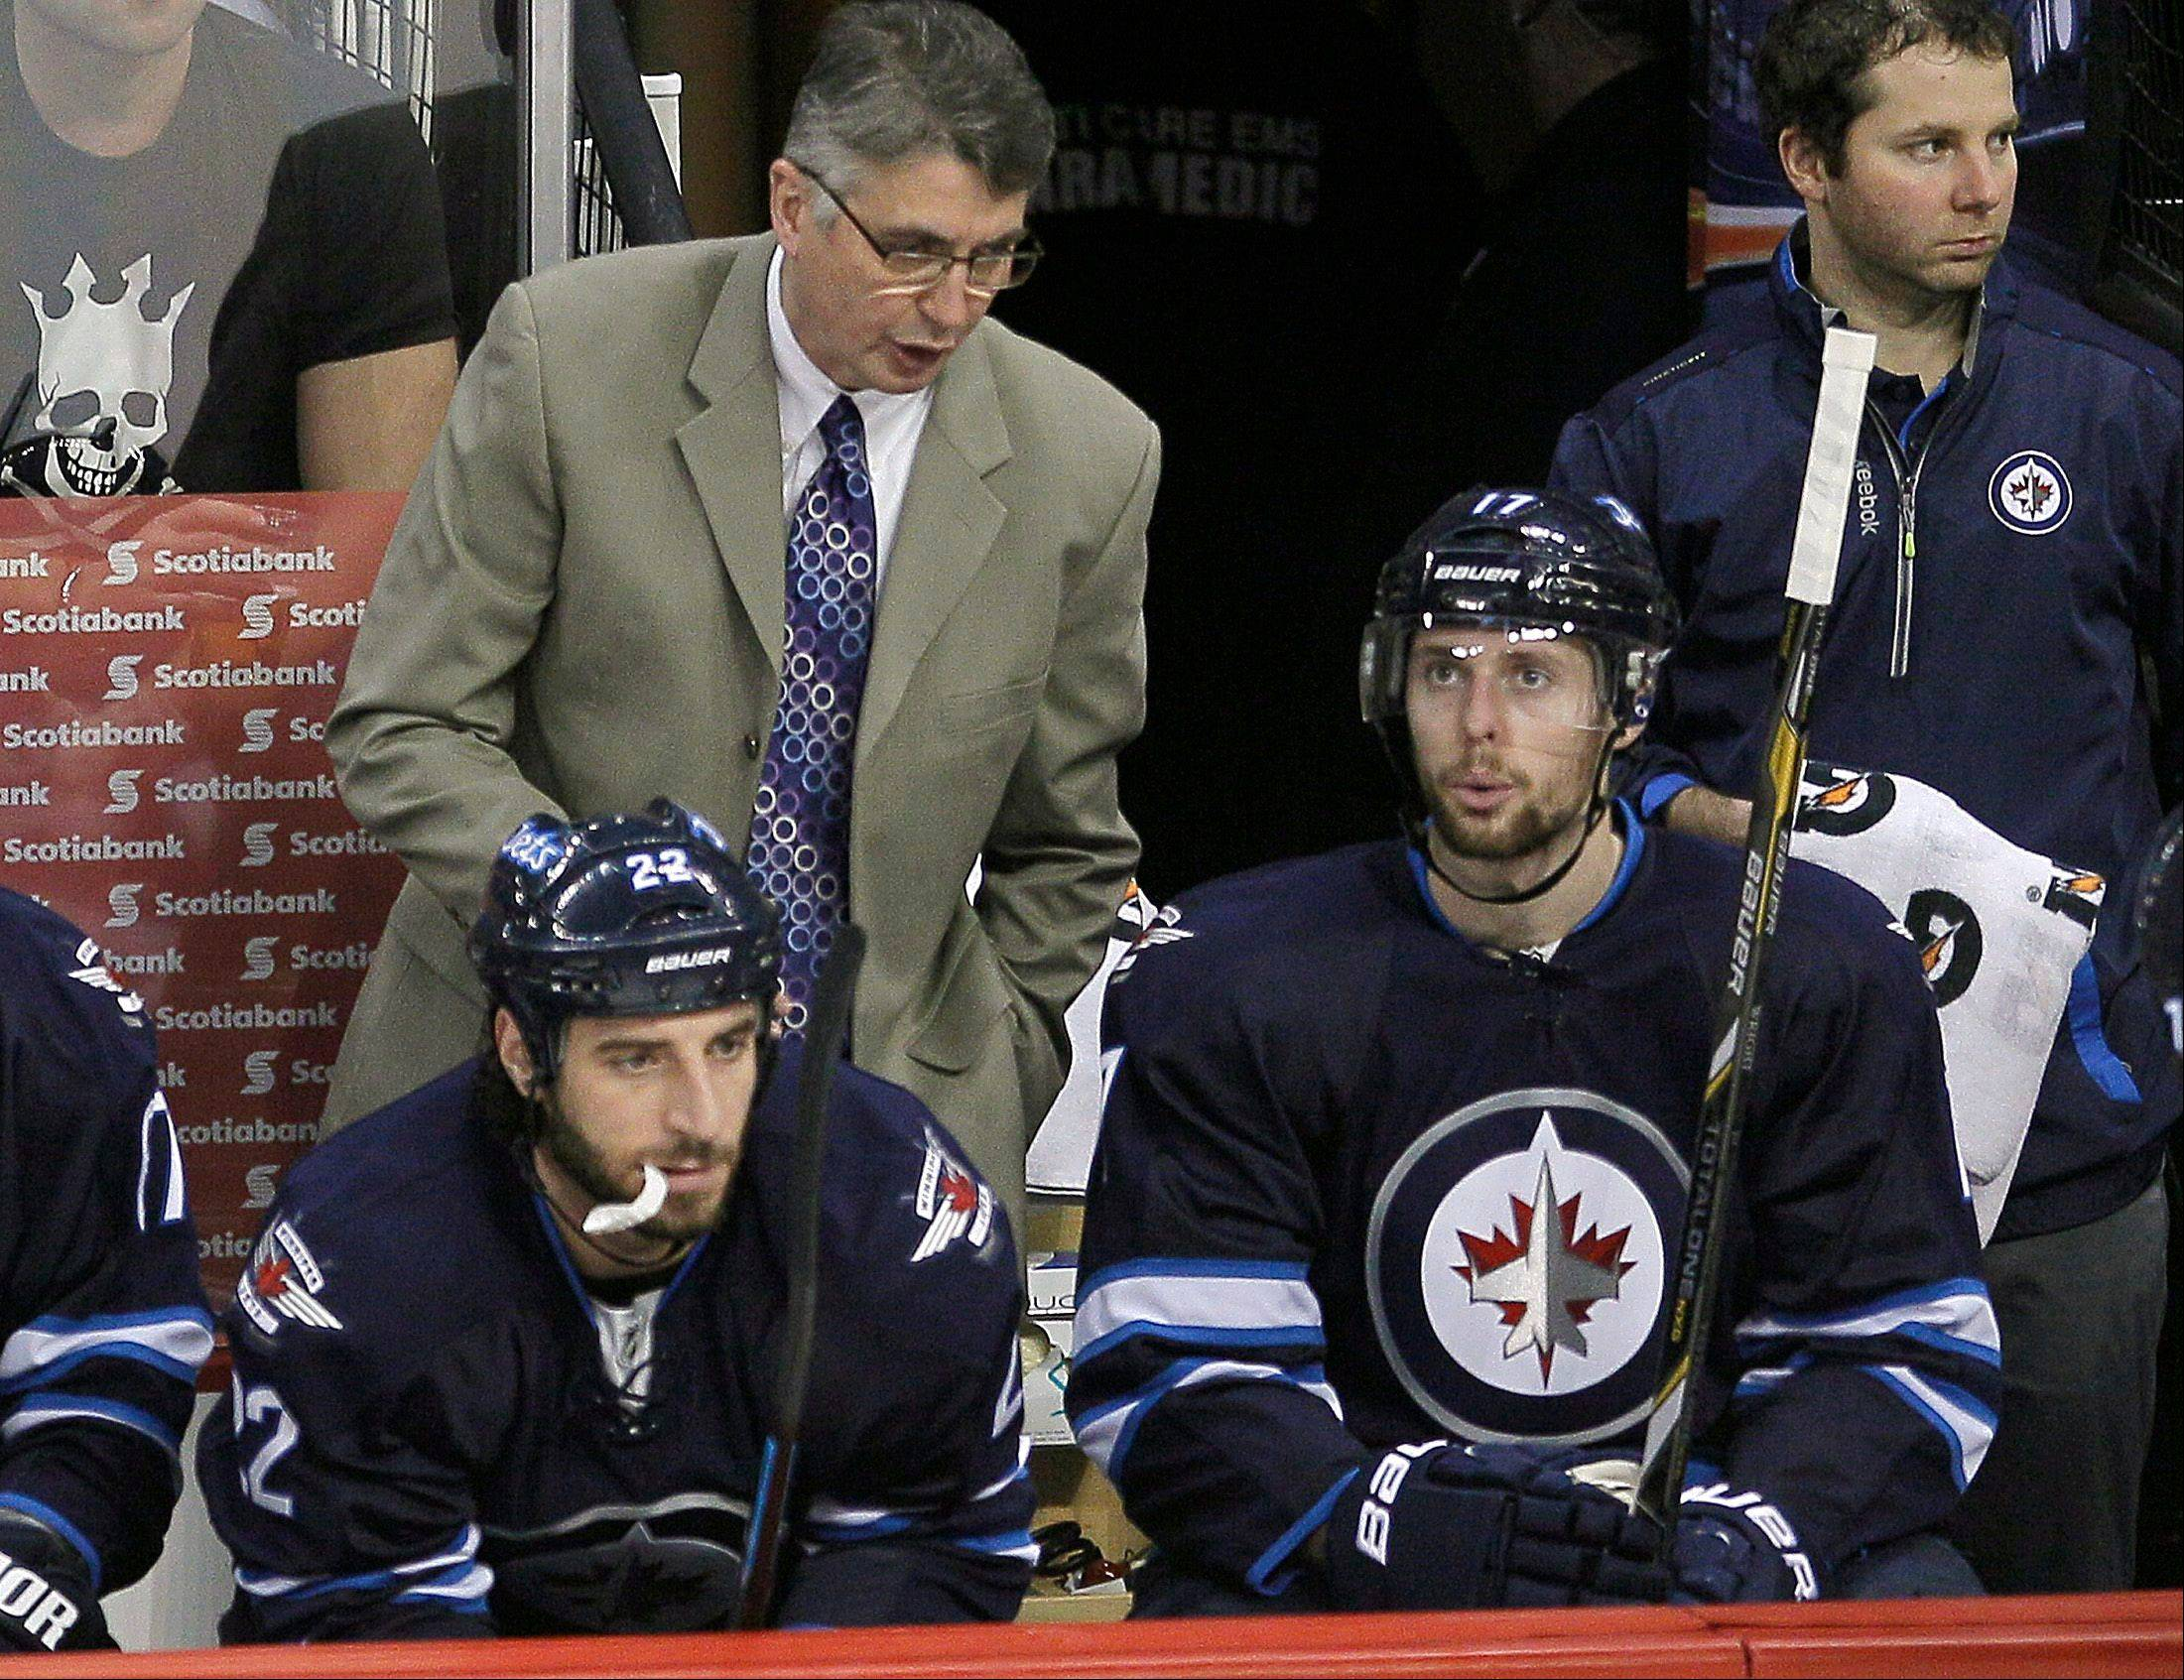 Winnipeg Jets head coach Claude Noel talks to players during Saturday's home game against the Columbus Blue Jackets. Noel was fired after the loss.